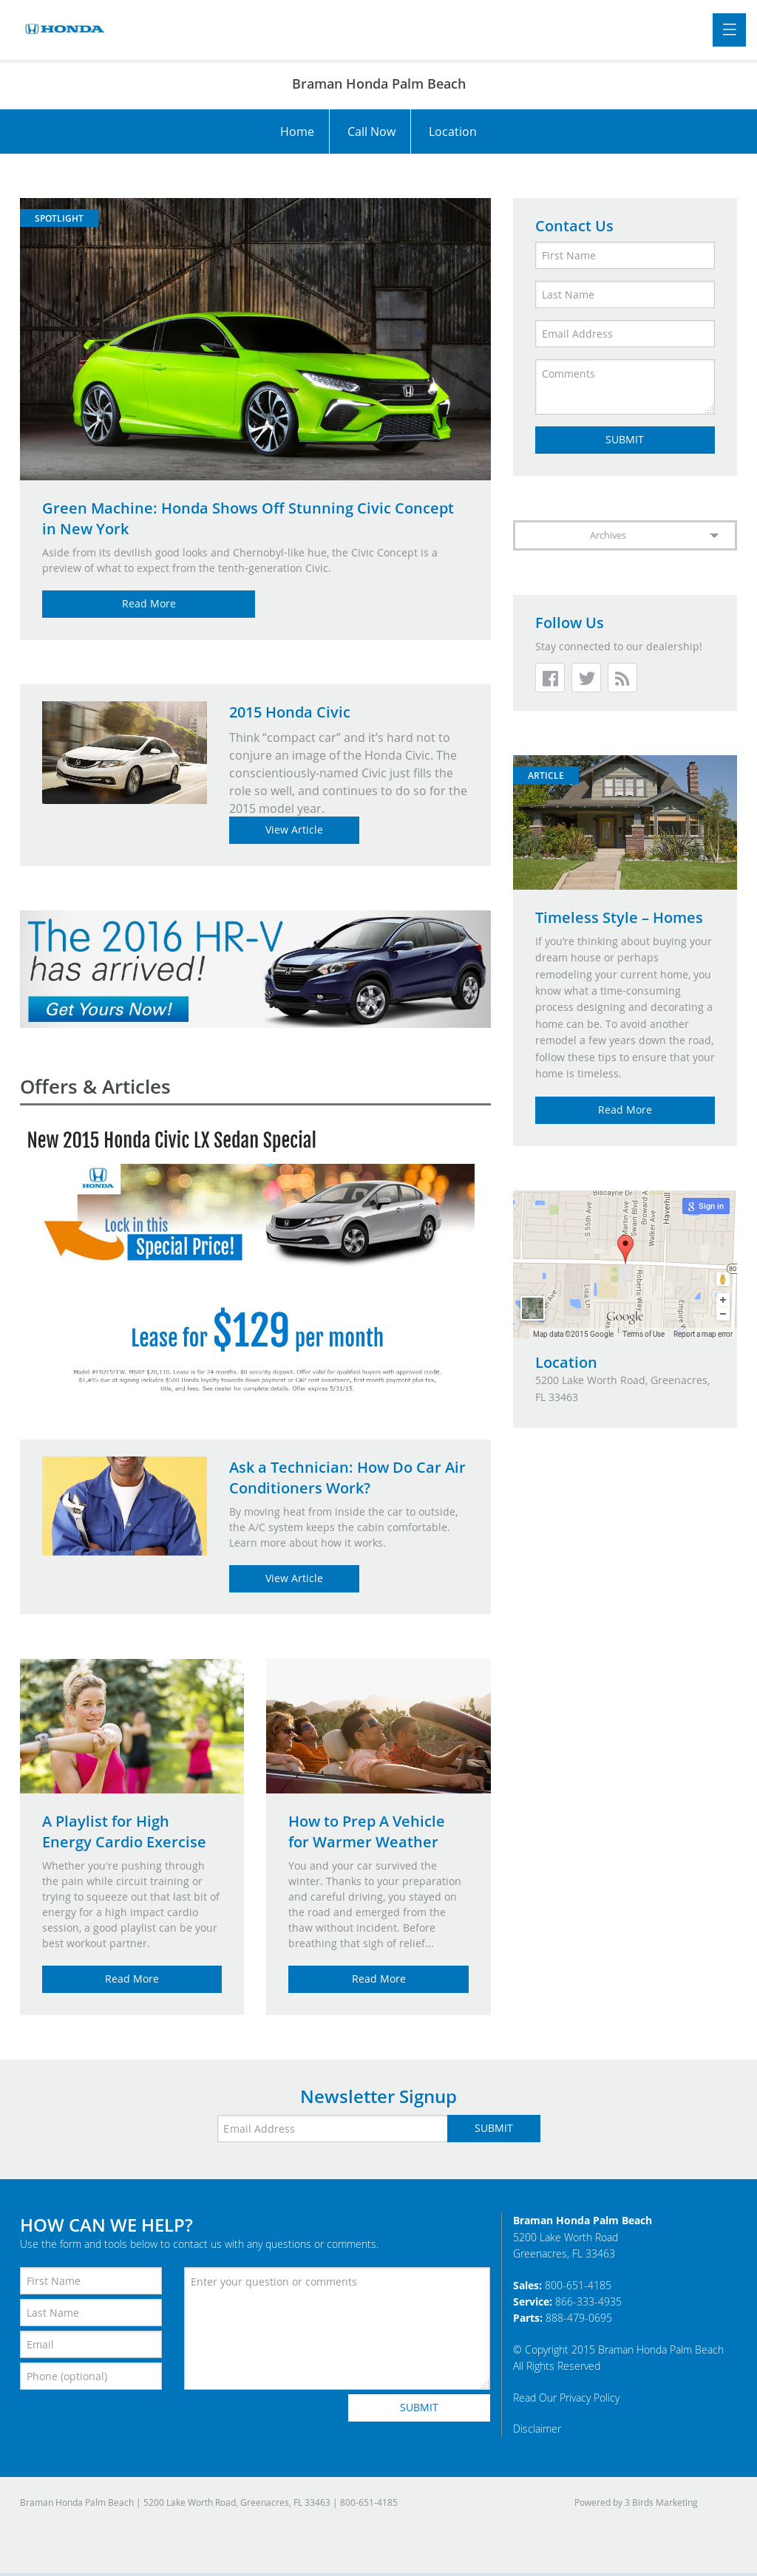 Braman Honda Of Palm Beach Competitors, Revenue And Employees   Owler  Company Profile